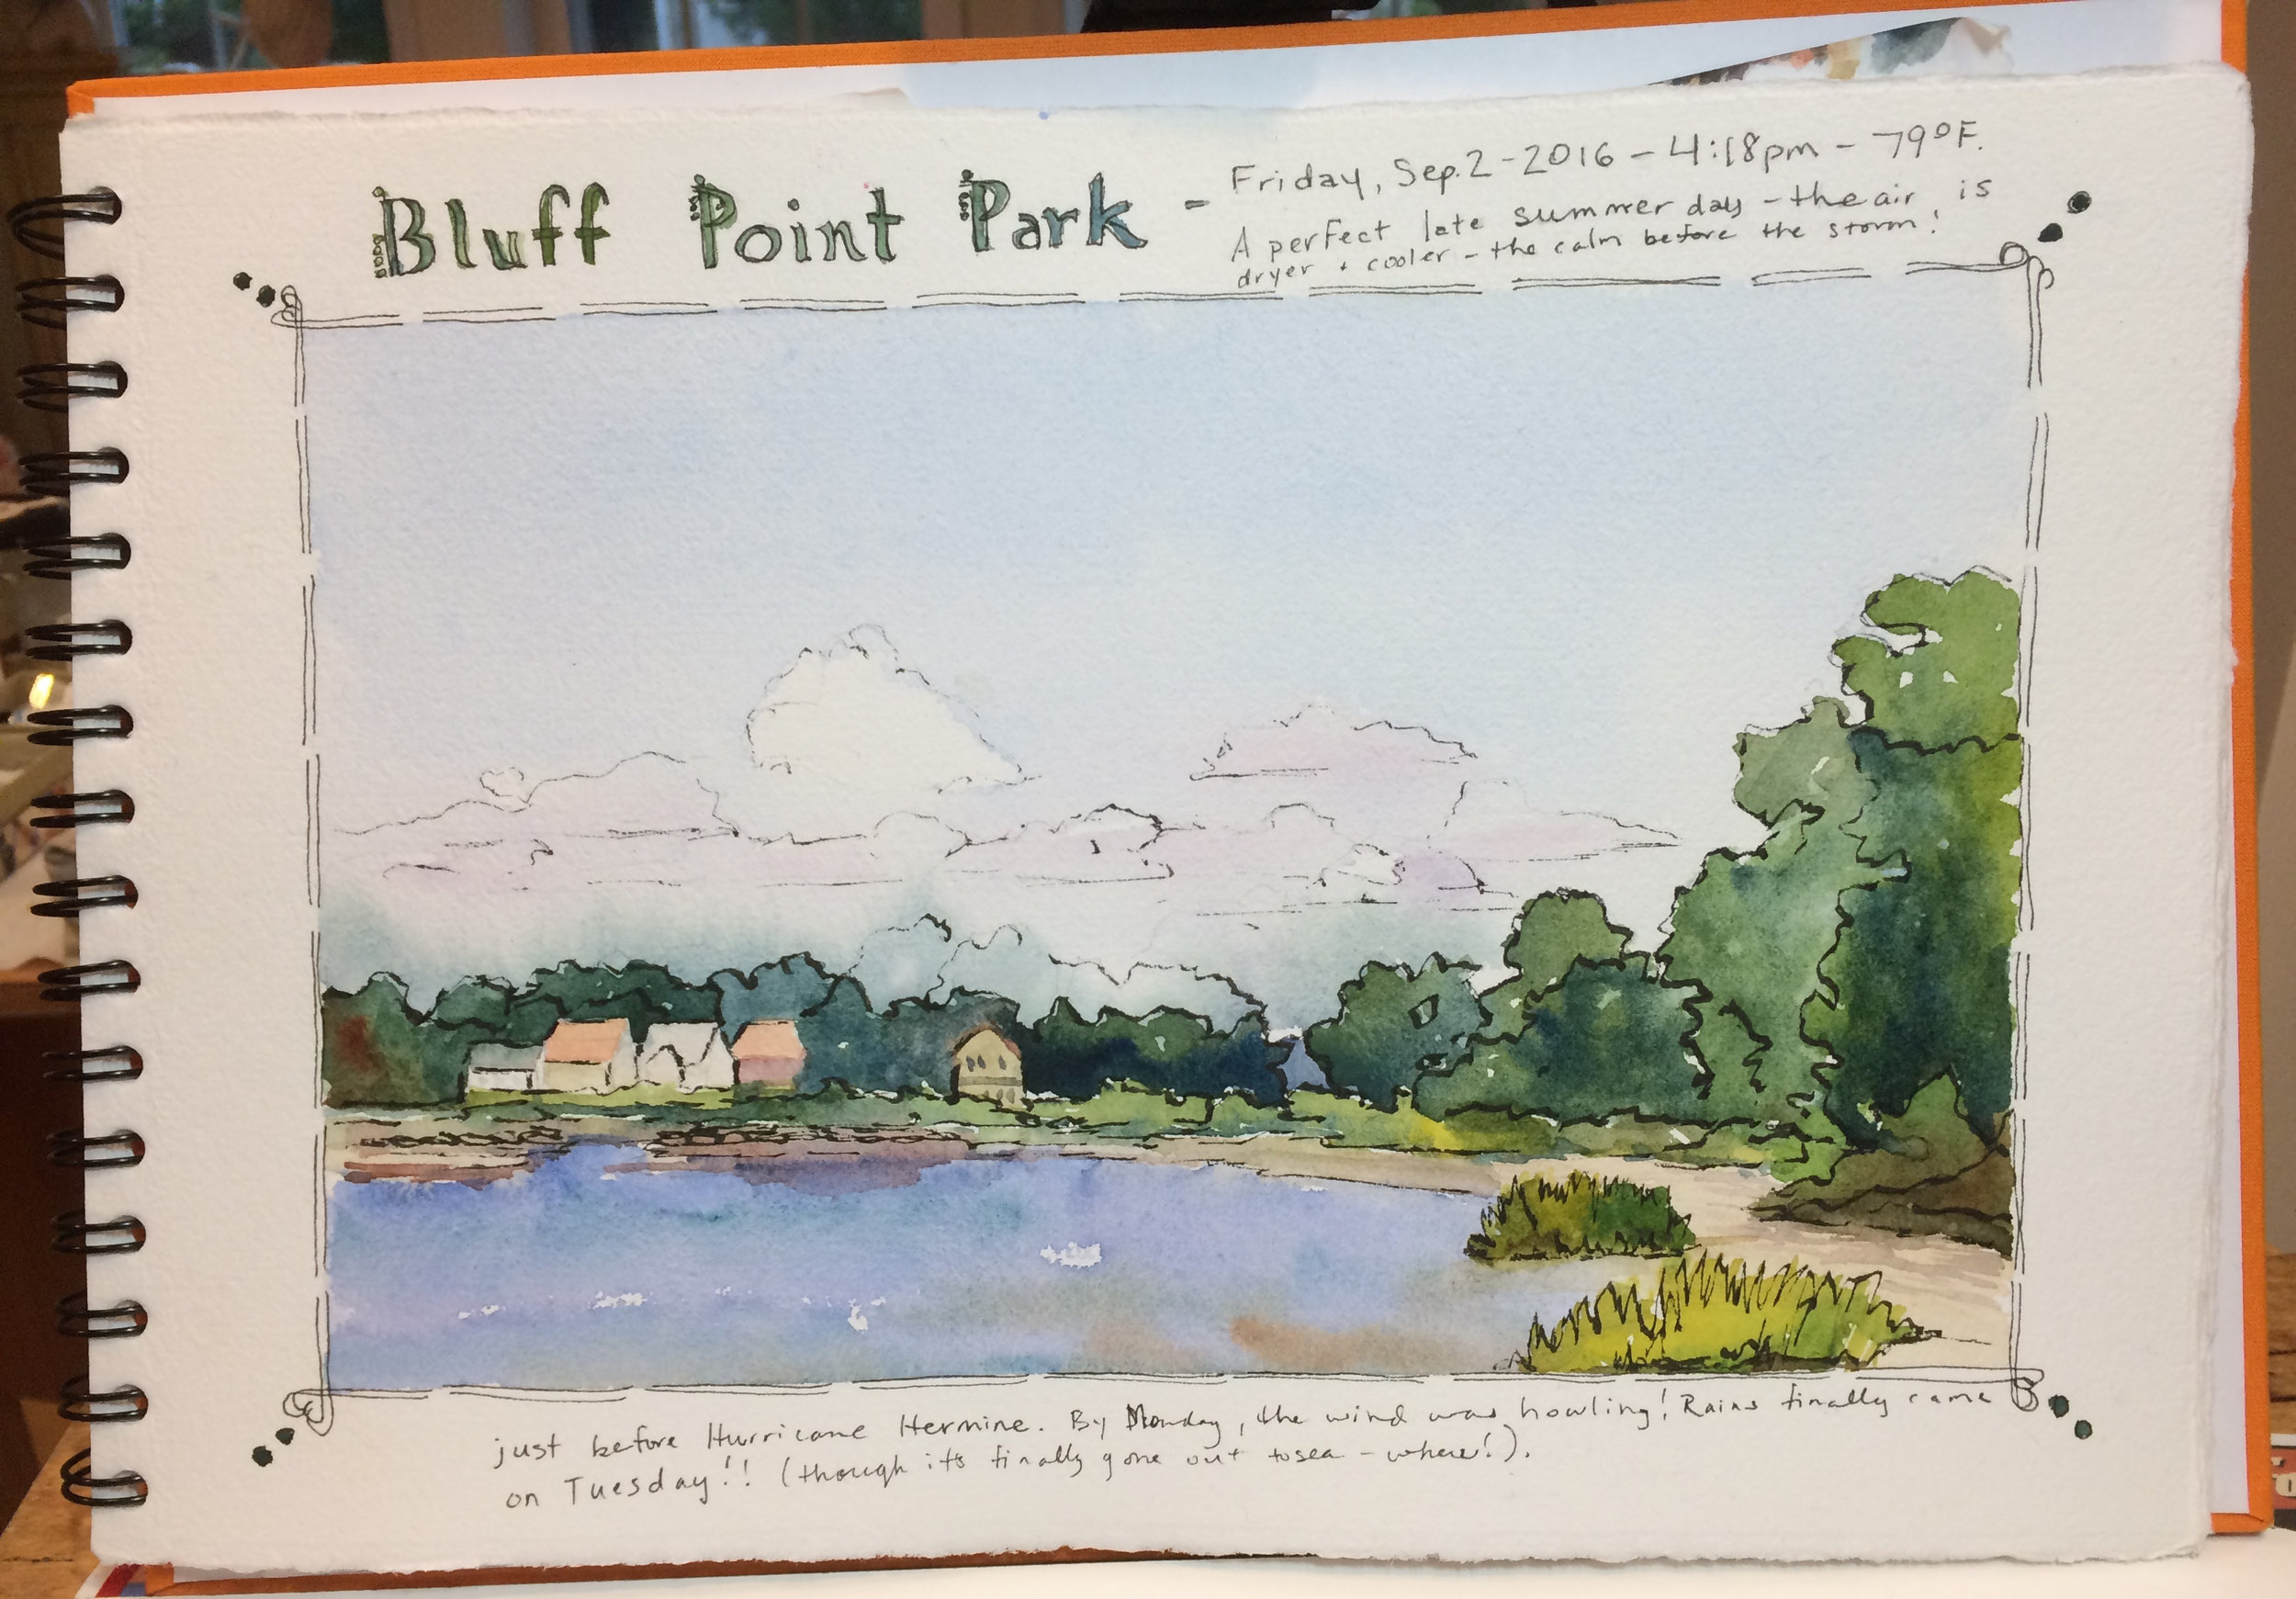 Bluff Point Park - Sept2016.jpg